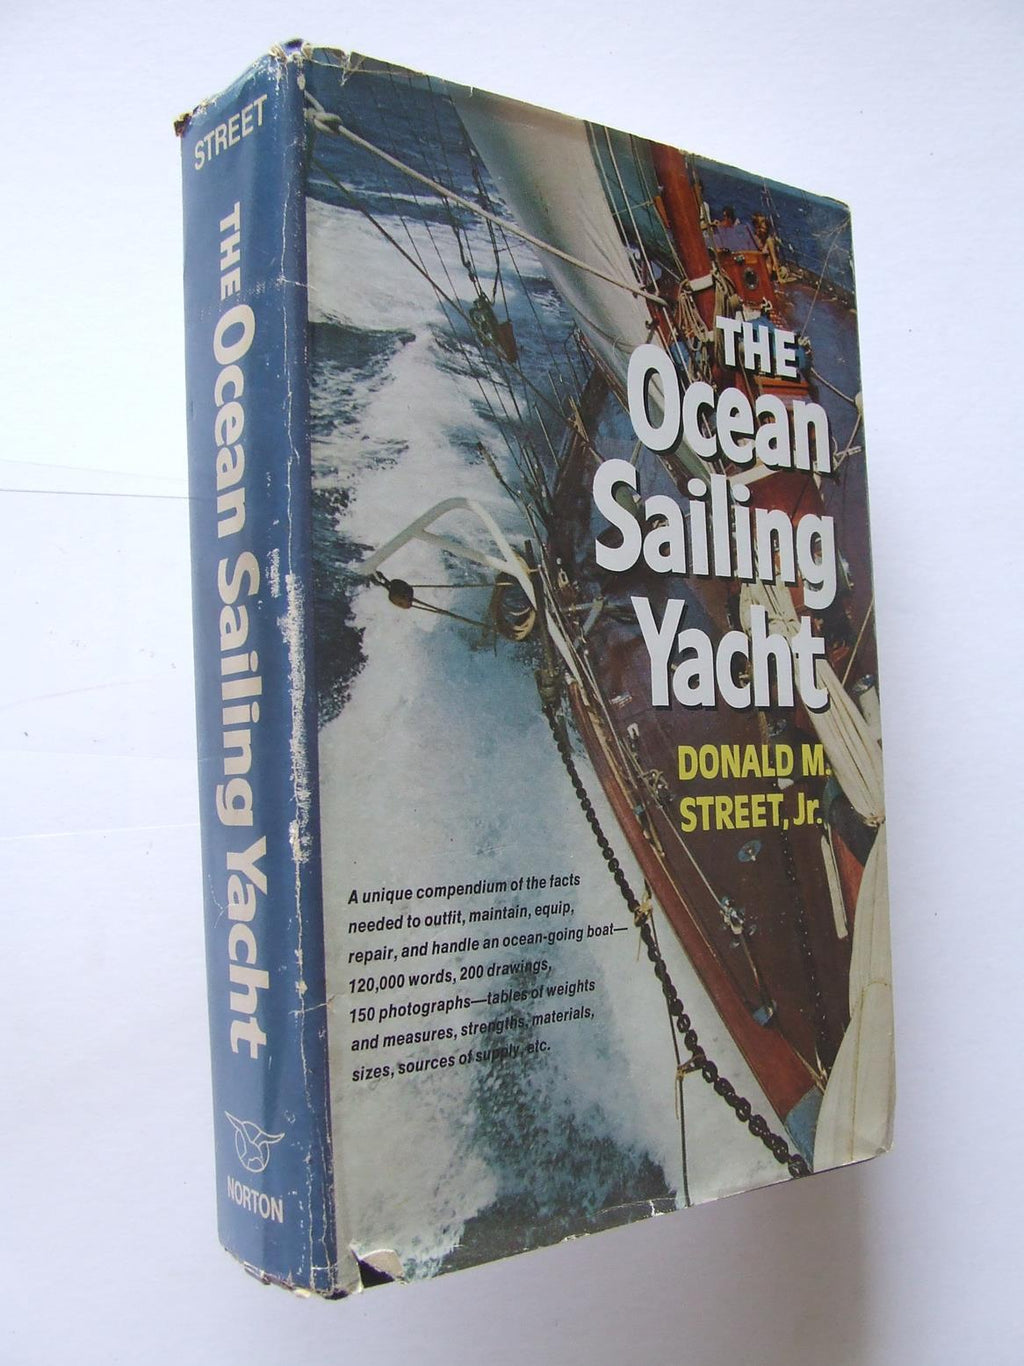 The Ocean Sailing Yacht / The Ocean Sailing Yacht, volume 2